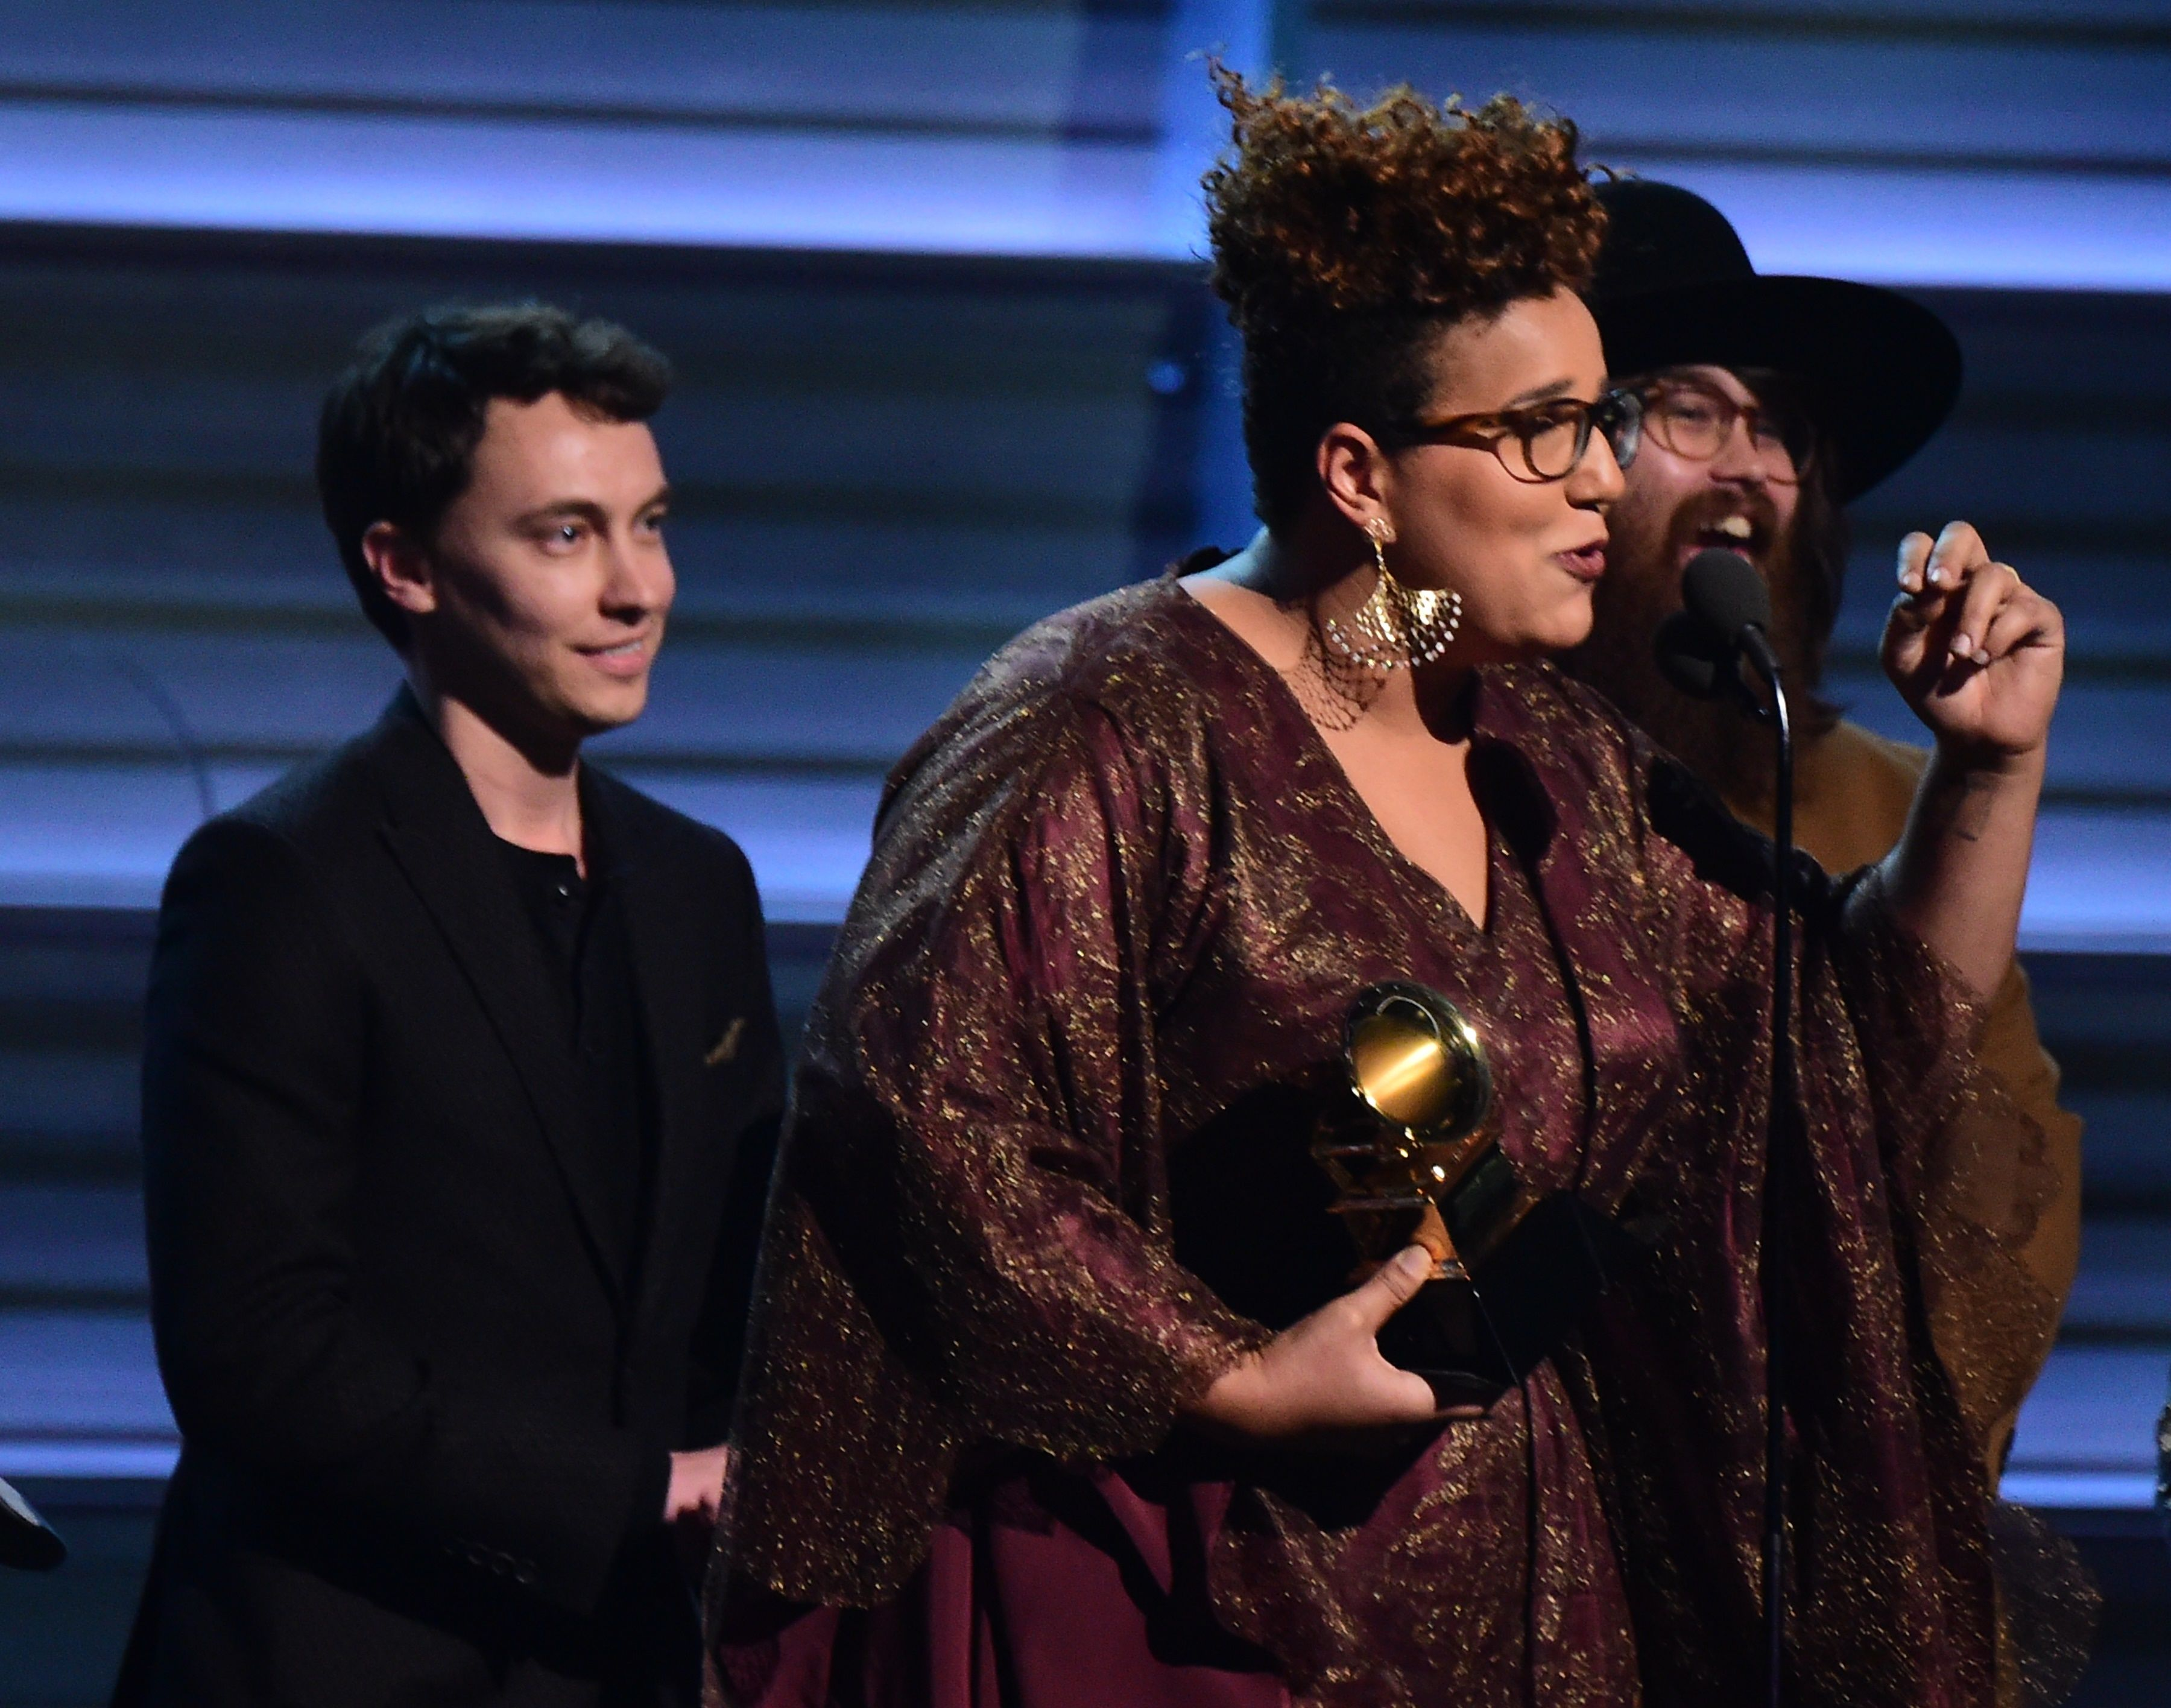 The band Alamaba Shakes recieves the award for the Best Rock Performance, Don't Wanna Fight onstage during the 58th Annual Grammy music Awards in Los Angeles February 15, 2016. AFP PHOTO/ ROBYN BECK / AFP / ROBYN BECK